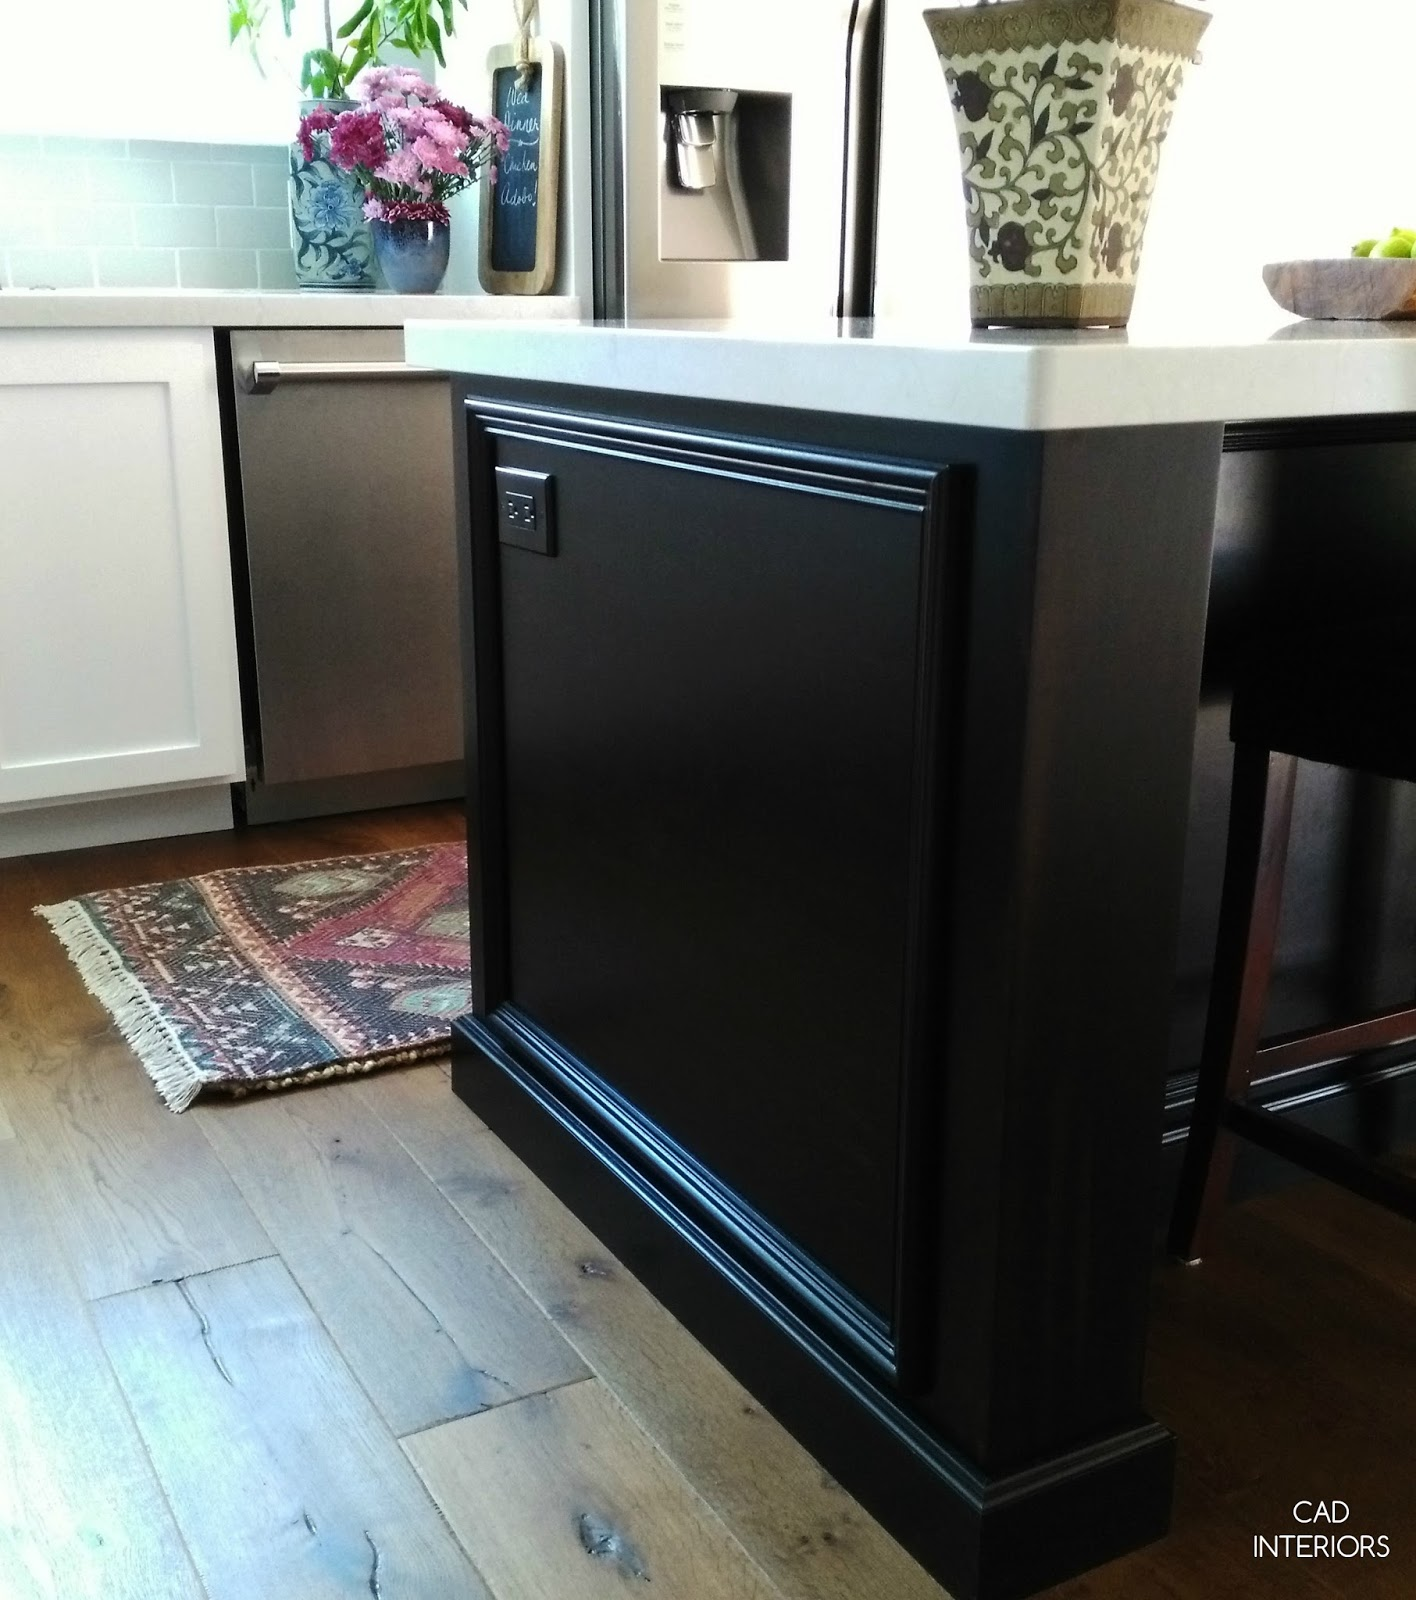 professional stainless steel appliances home improvement kitchen renovation remodel wide plank wood floors